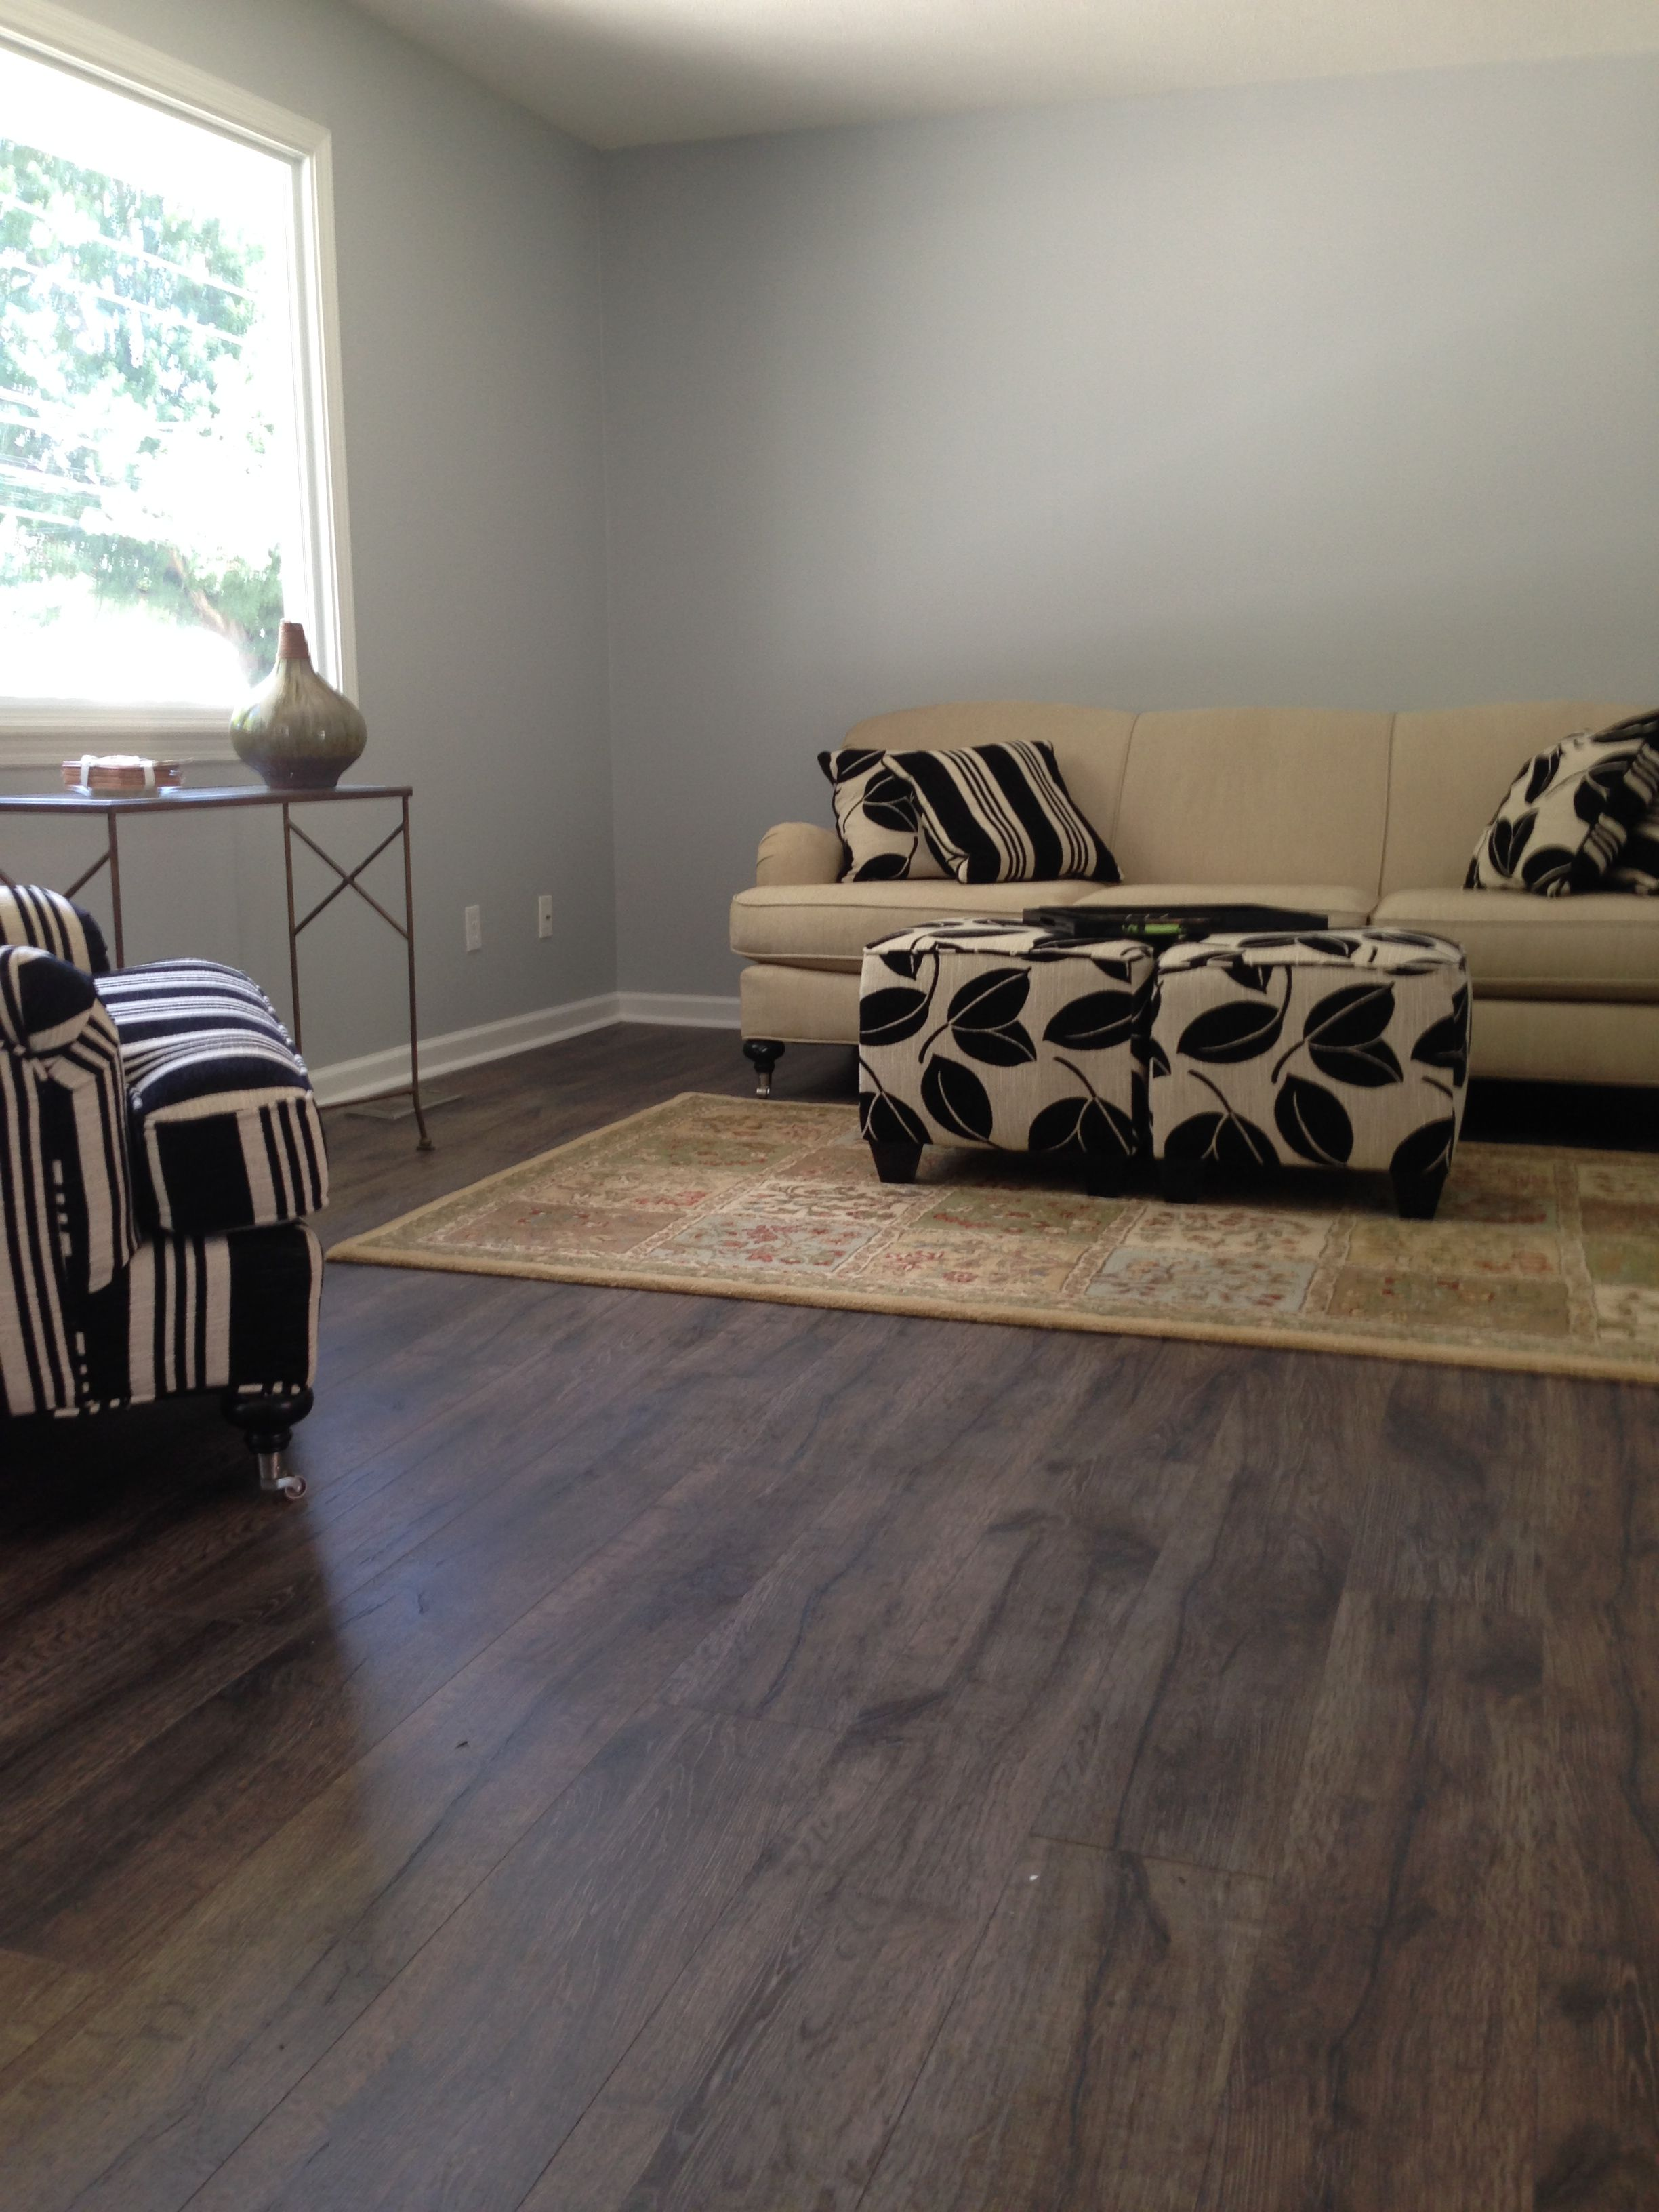 This house flip from Michael W. had quickstepfloors